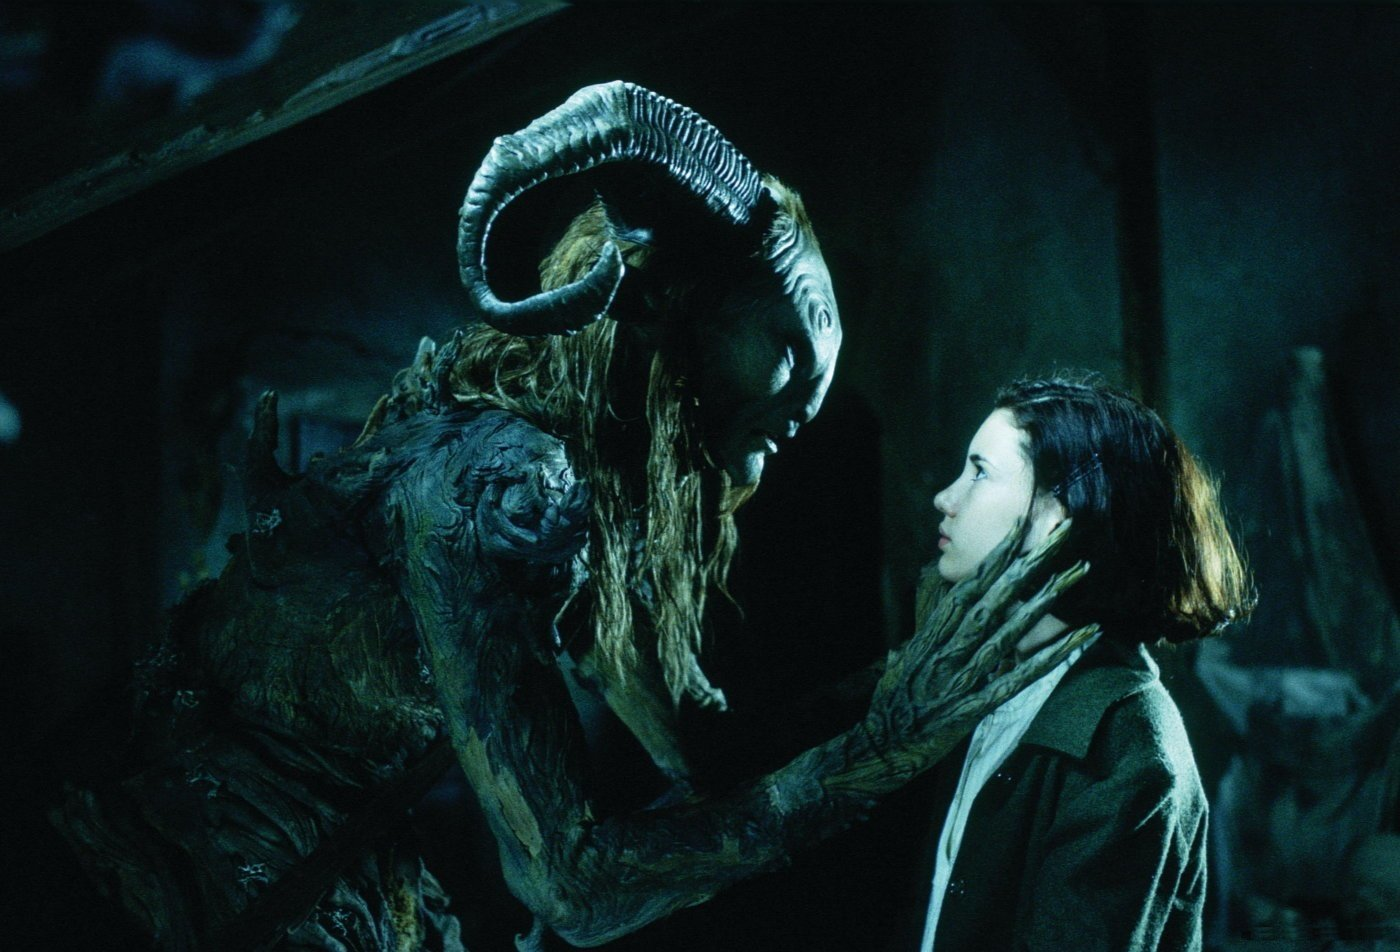 16 Pan S Labyrinth Hd Wallpapers Background Images Wallpaper Abyss